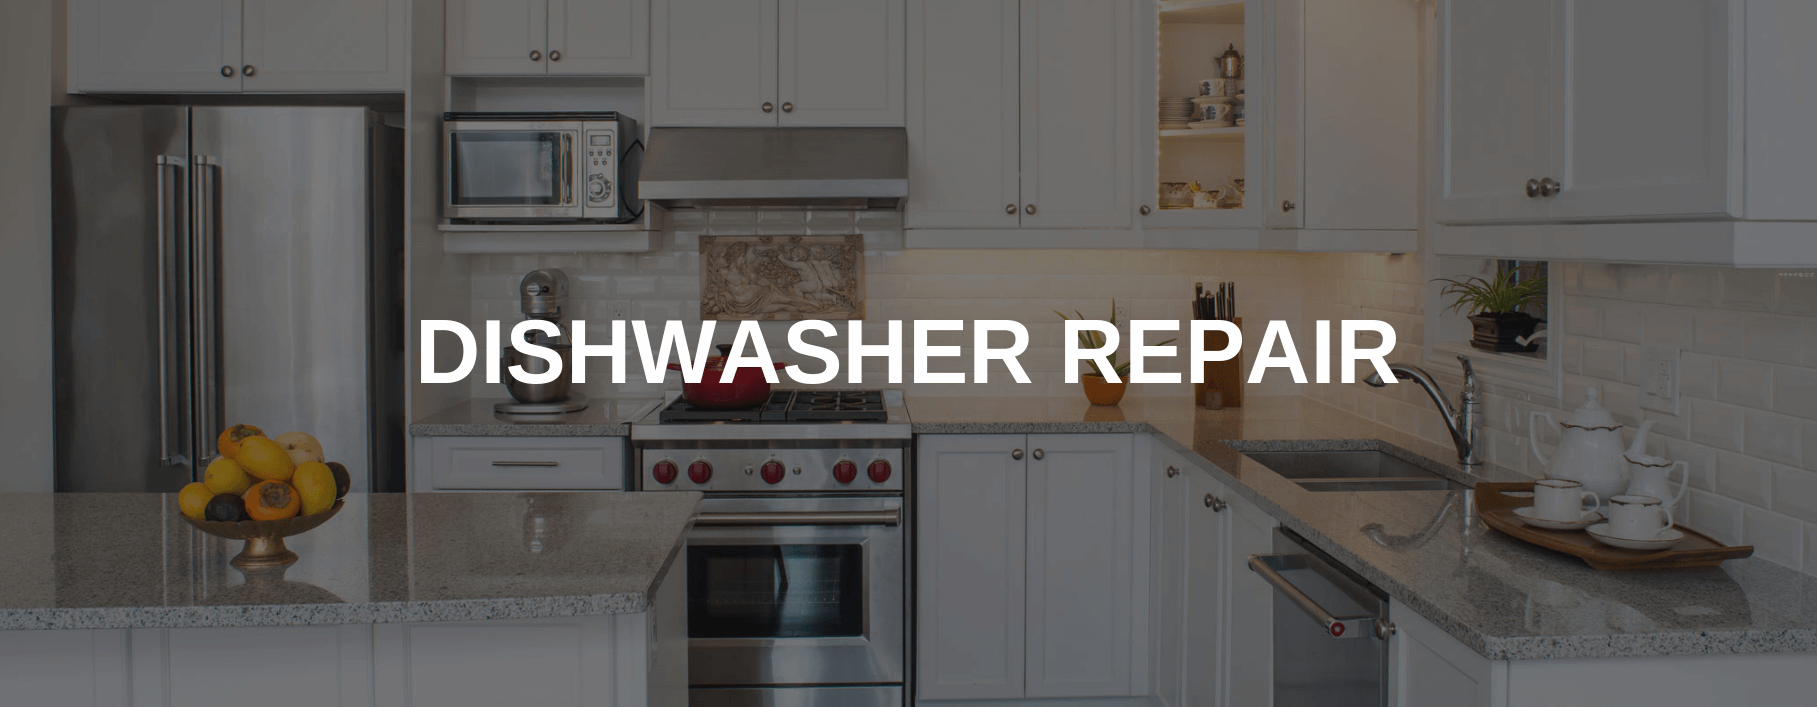 dishwasher repair jersey city